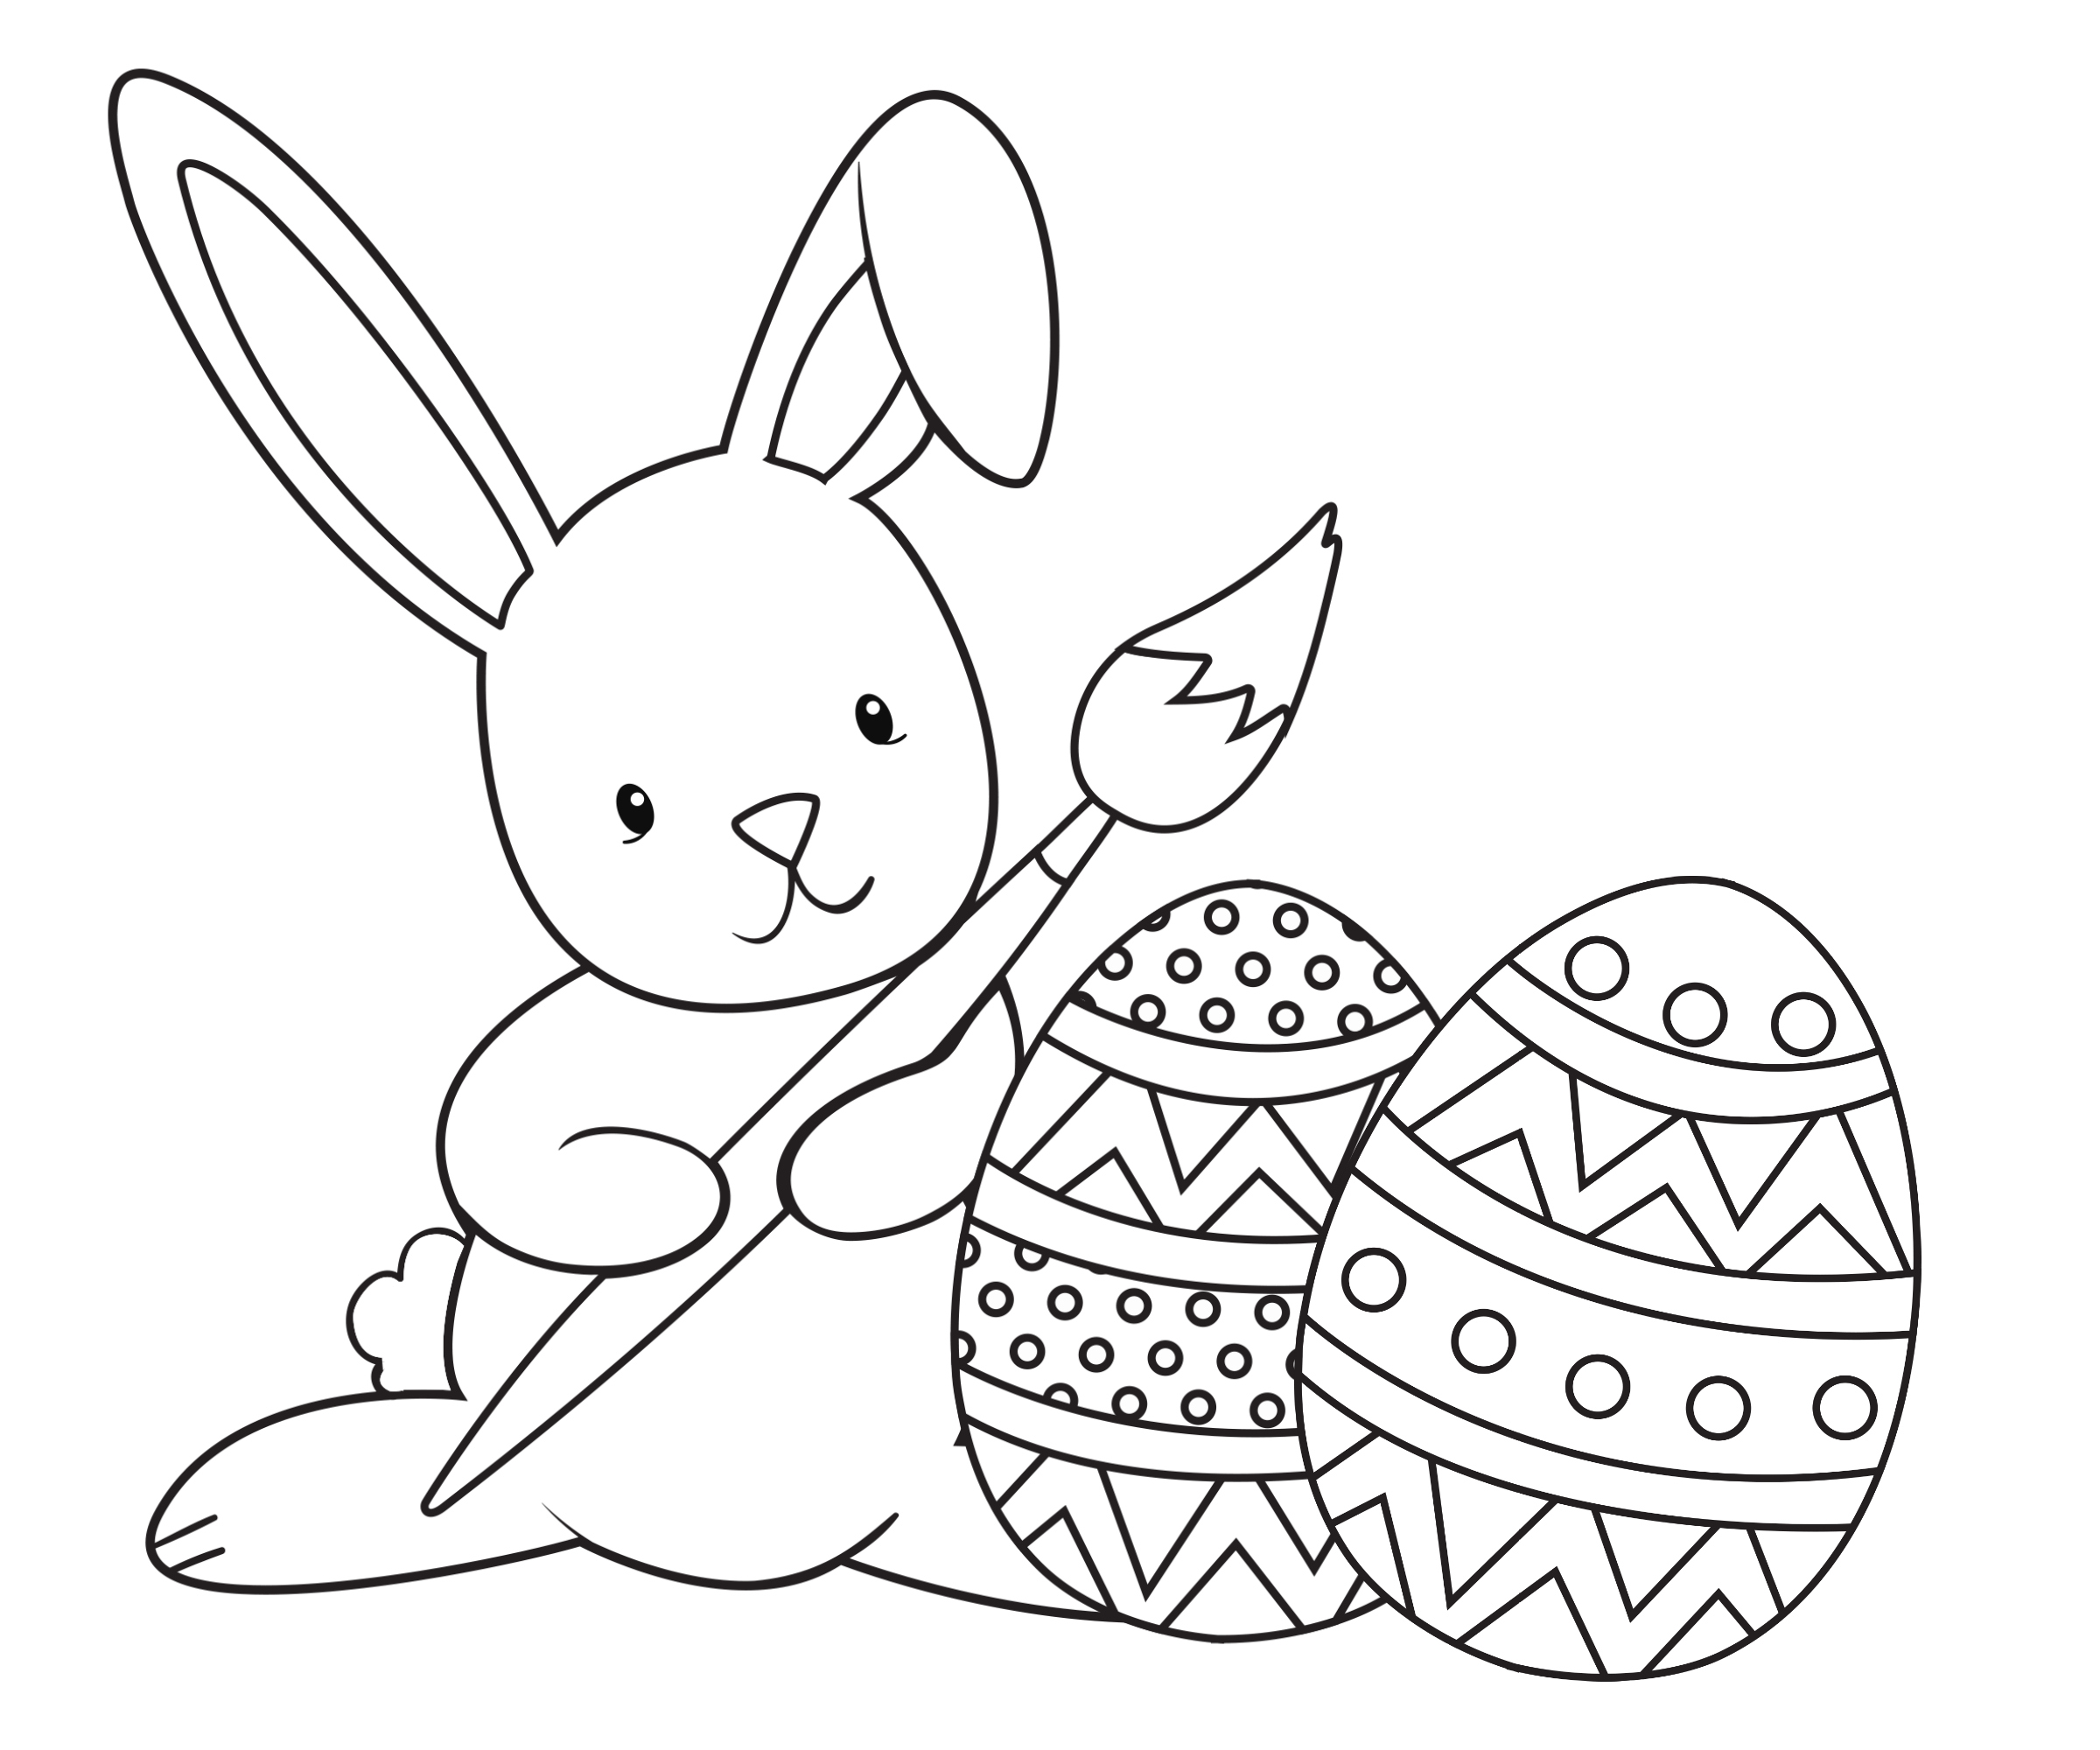 Easter Coloring Pages for Kids Crazy Little Projects Download Of Bunny Egg by Rustchic Bucket Printable